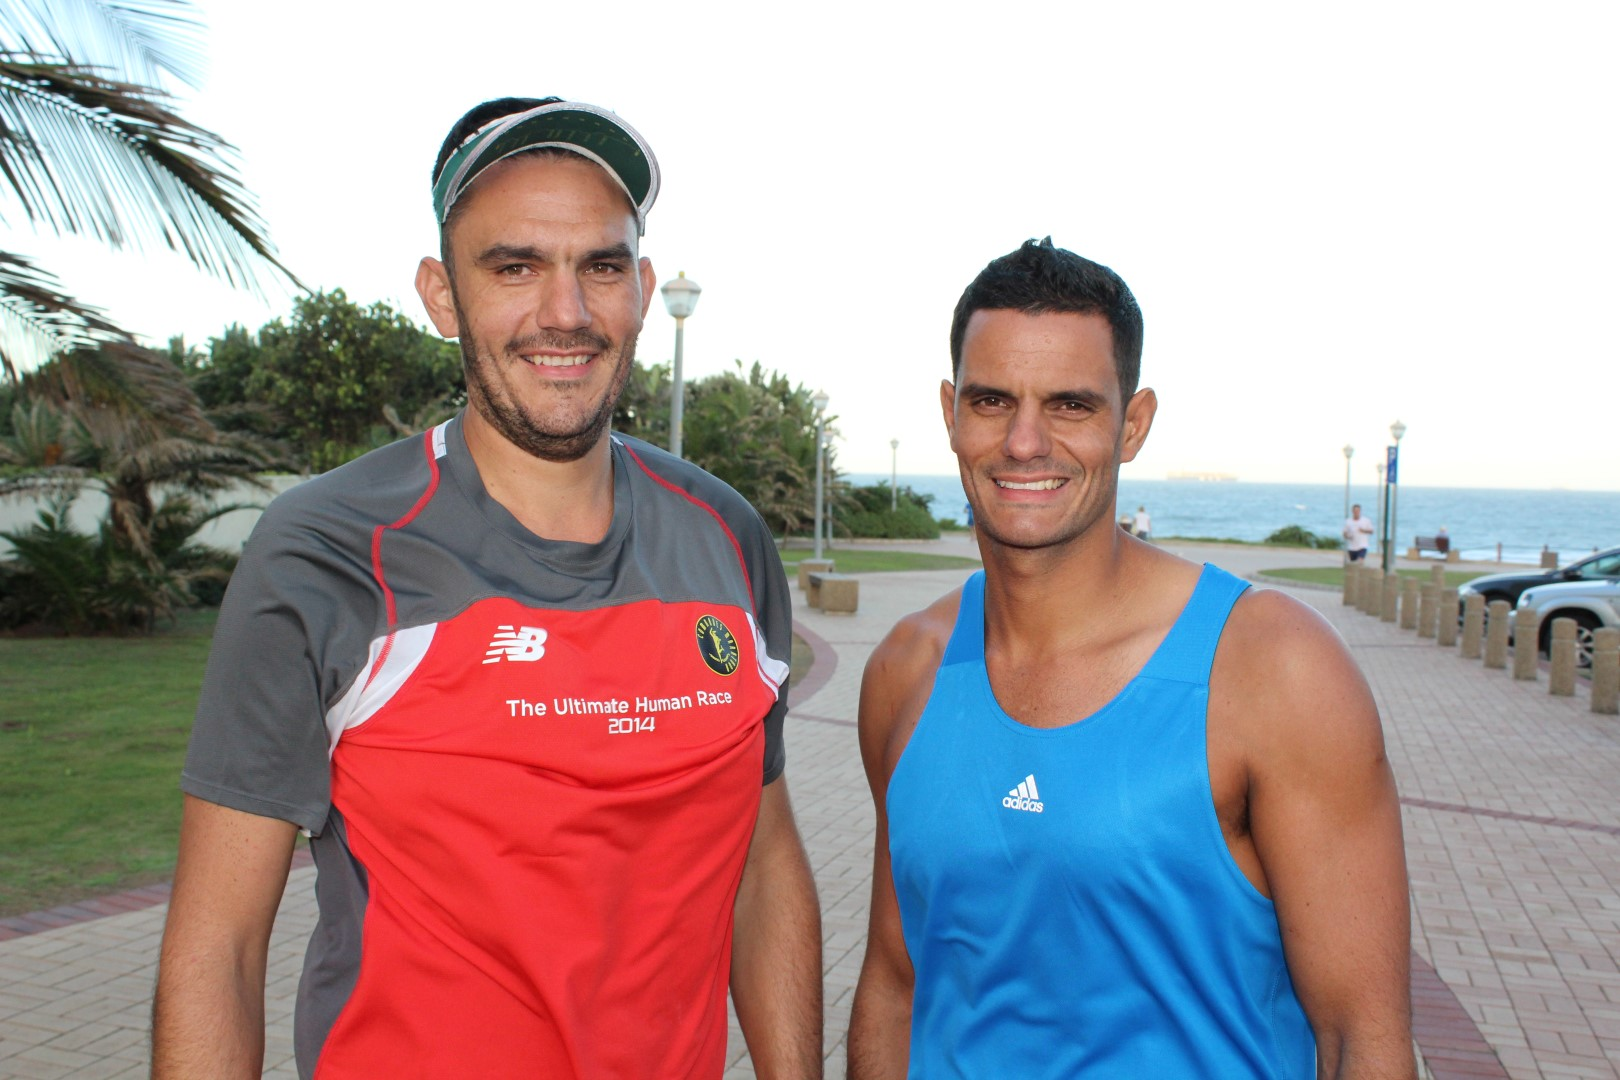 Duane and Jody Taylor are ready for this year's Comrades Marathon up-run.